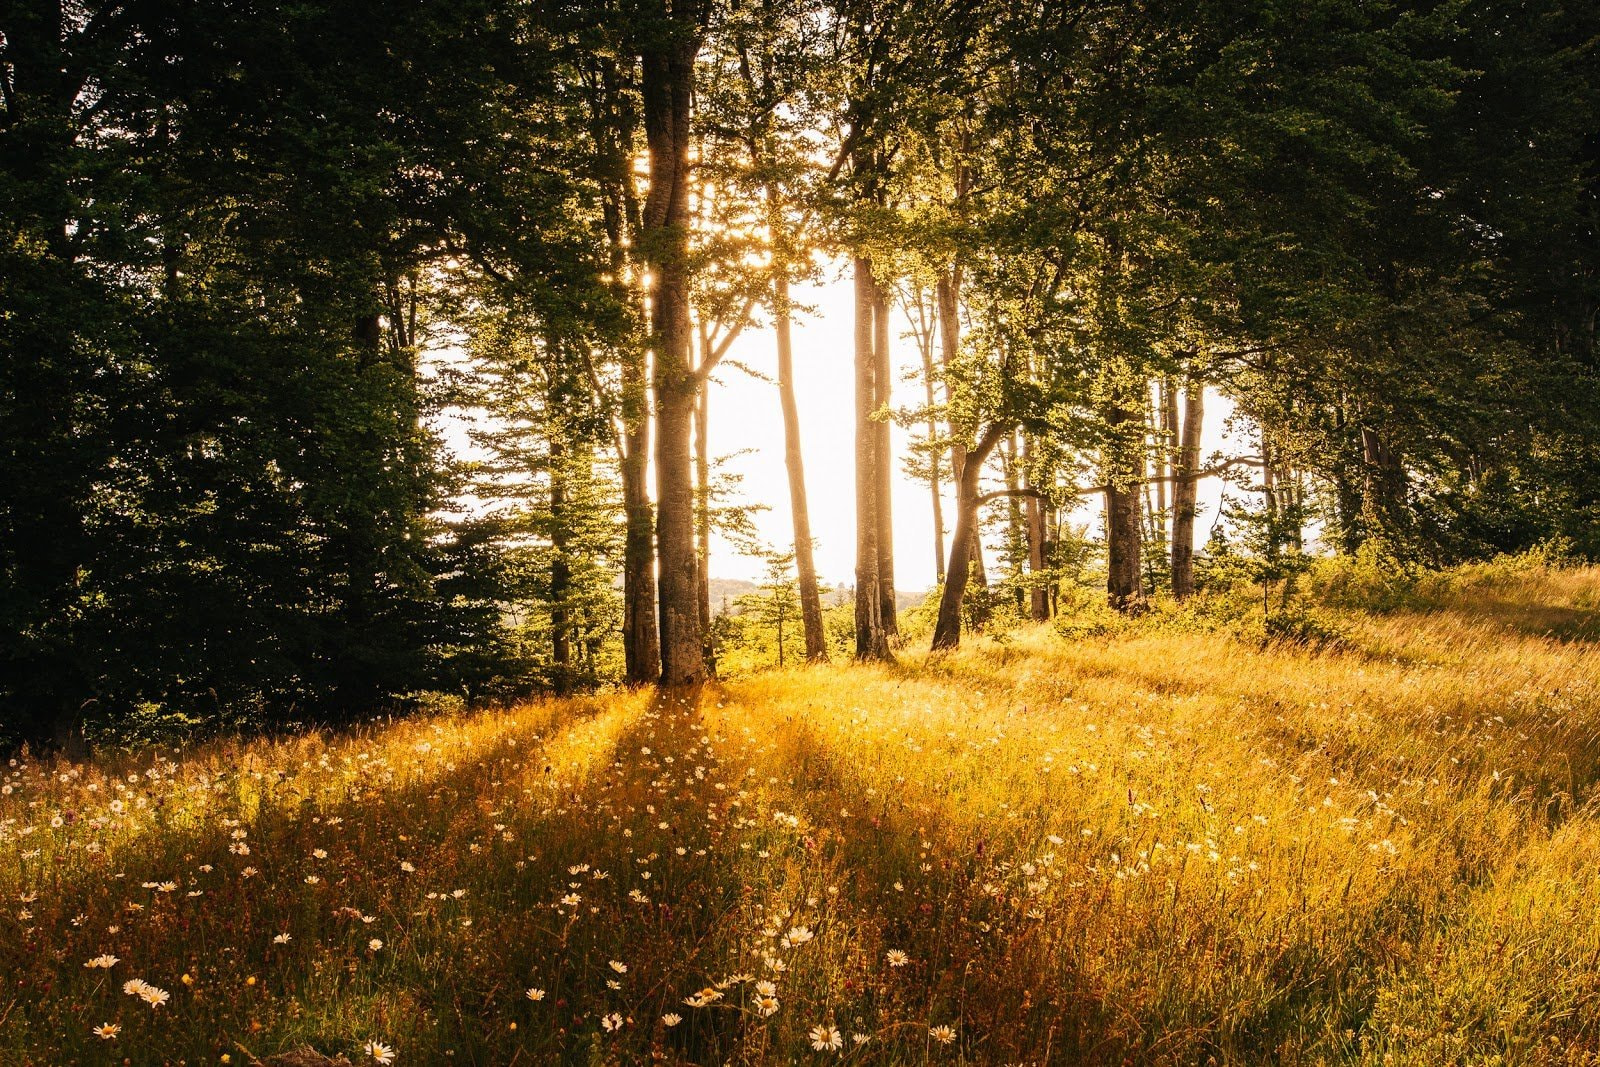 Forest during the golden hour by Anton Darius